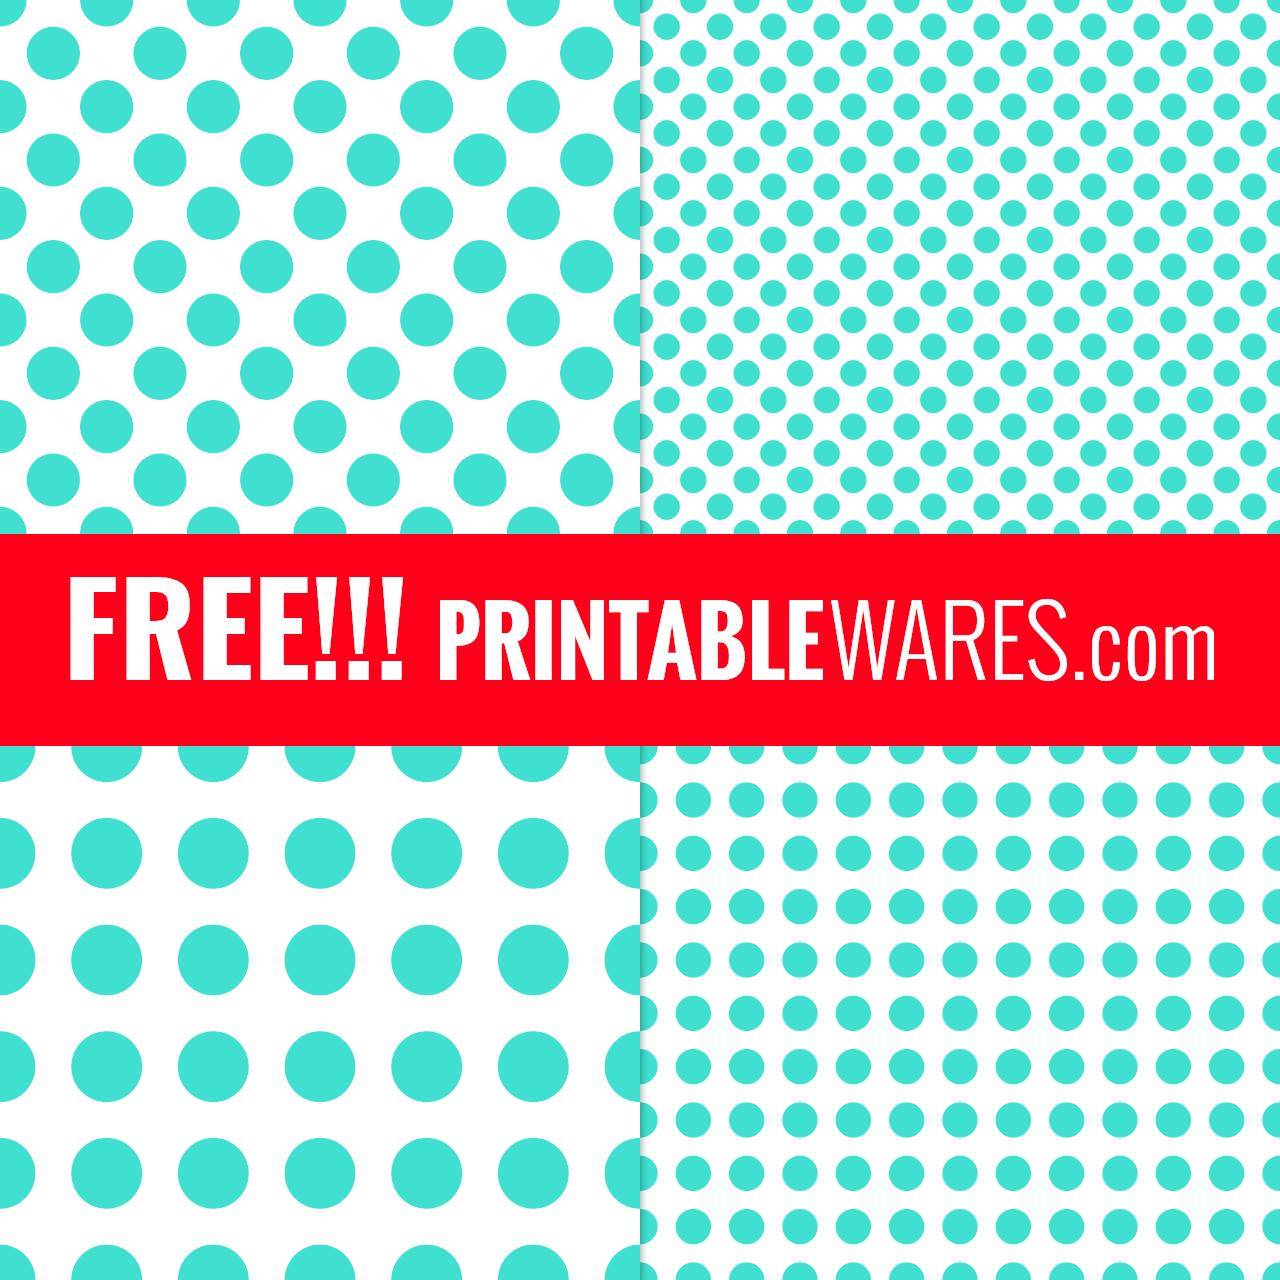 Turquoise Polka Dots Free Printable Scrapbook Paper Pack